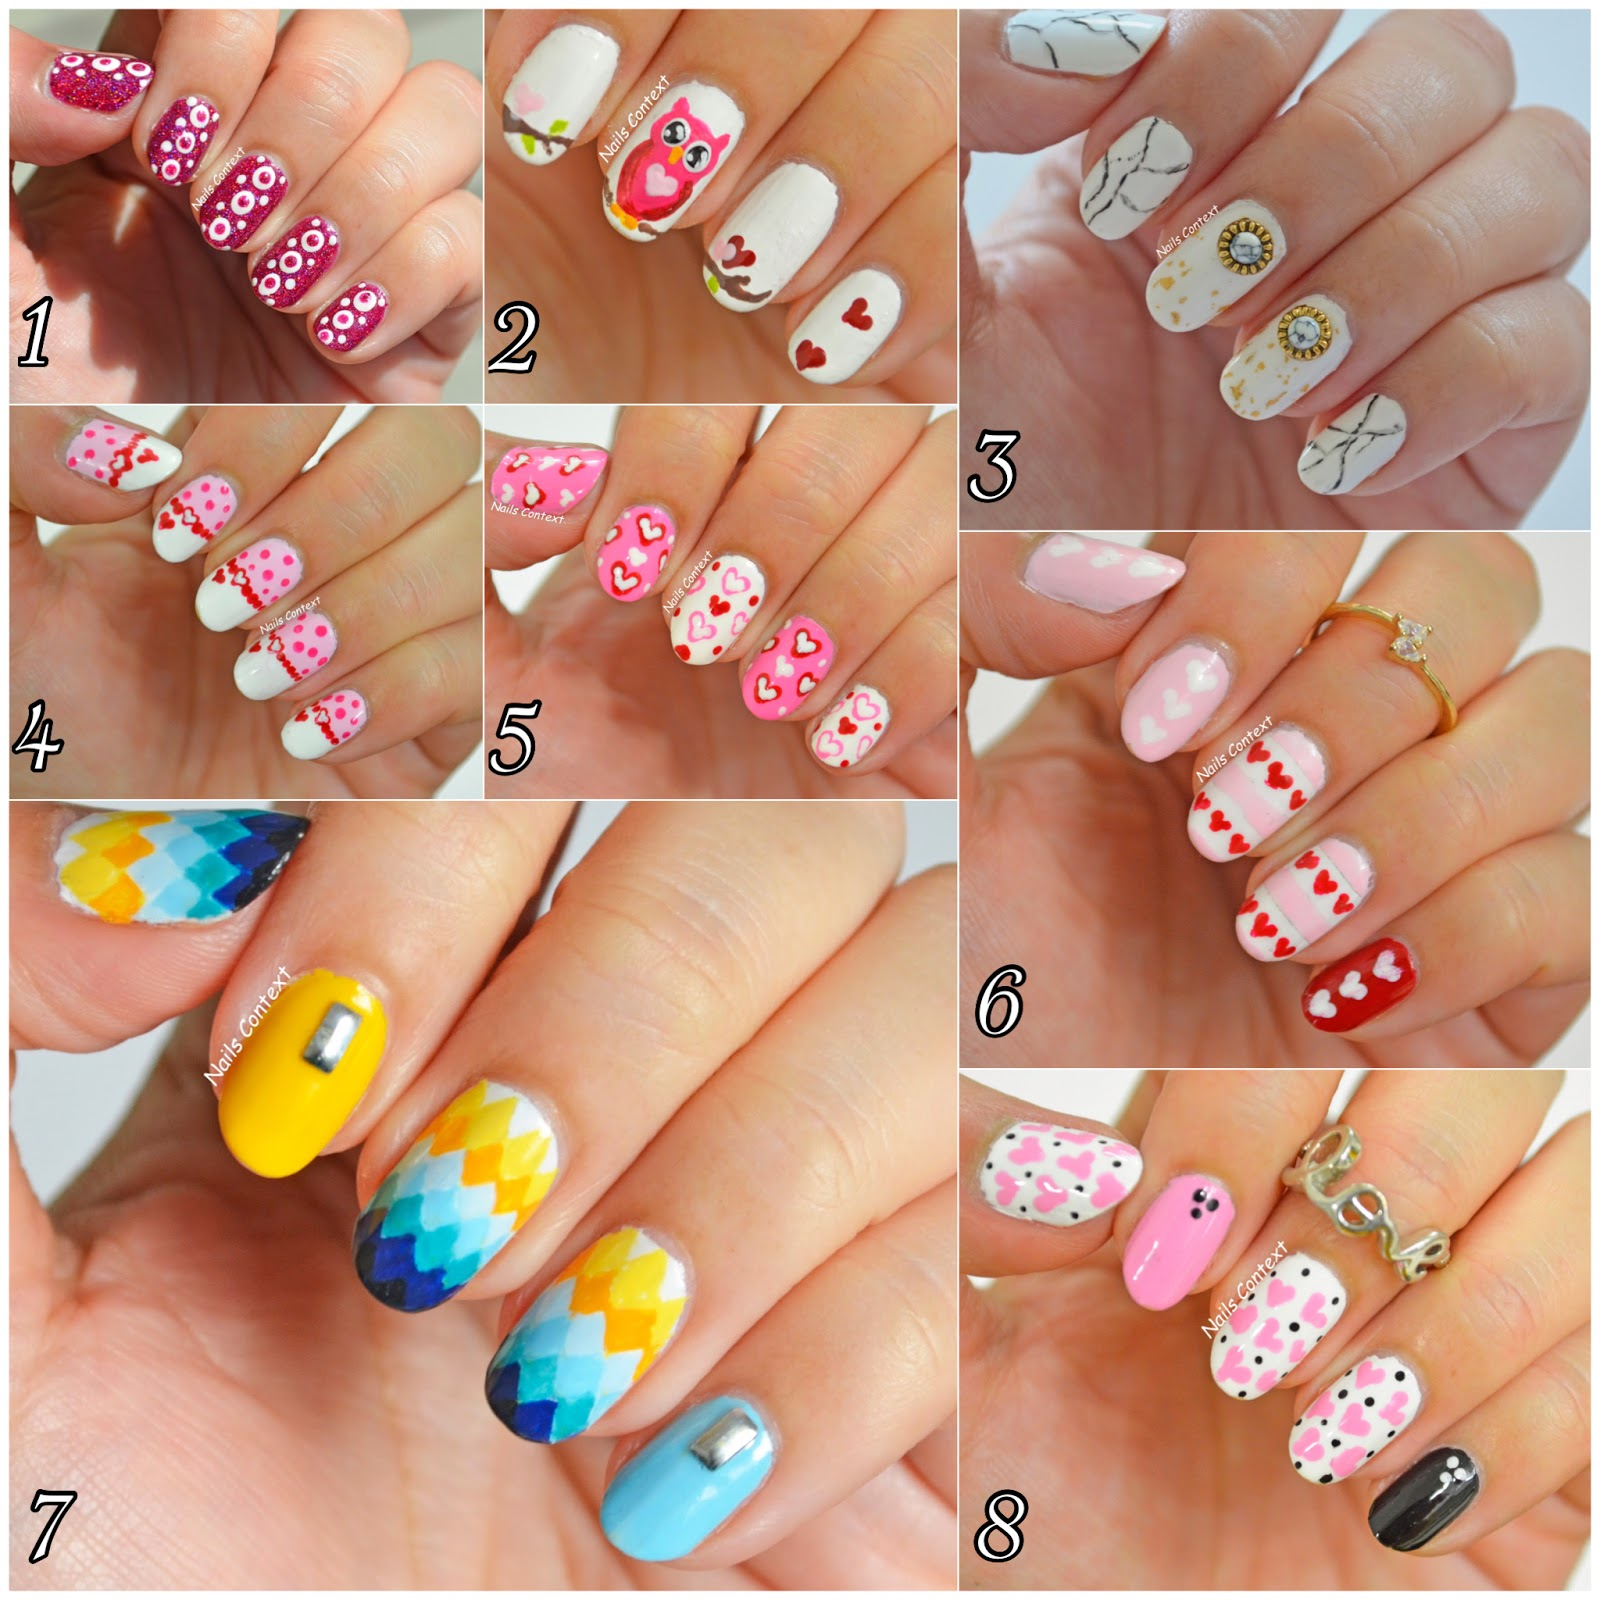 Nails For February | Best Nail Designs 2018